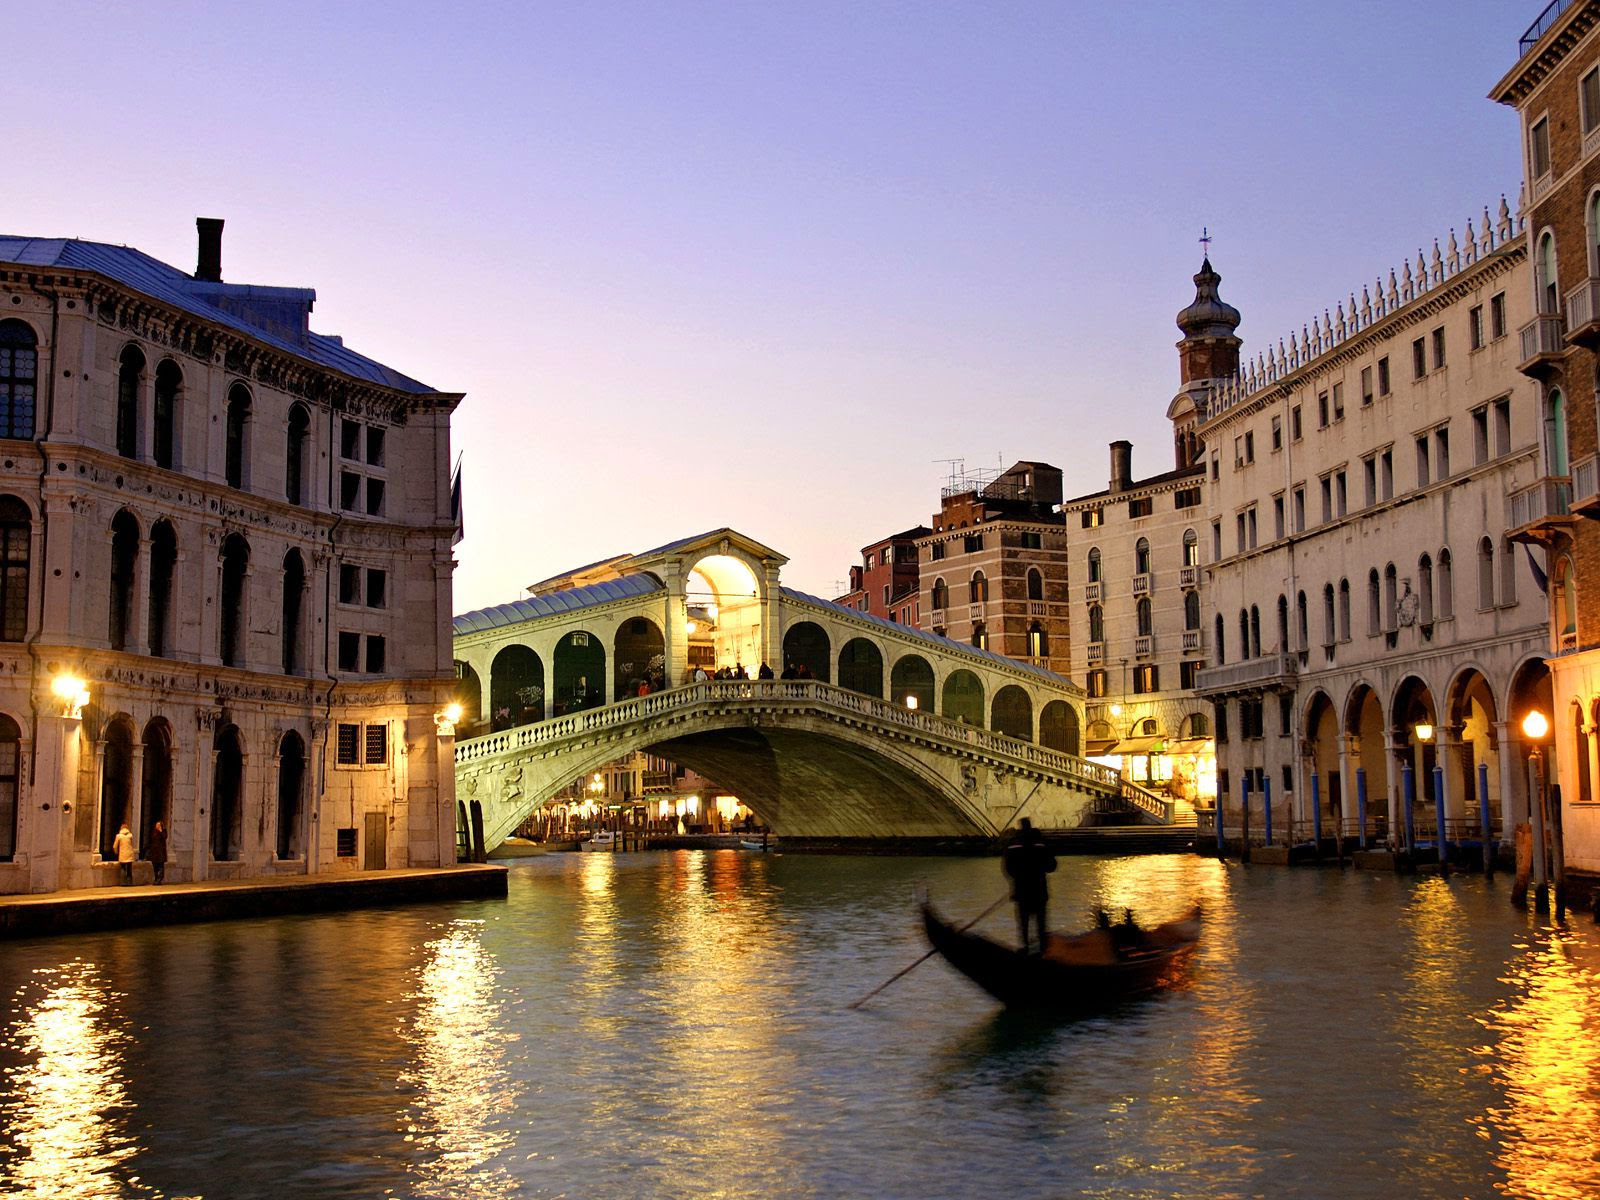 There's nothing more romantic than spending Valentine's Day in Venice